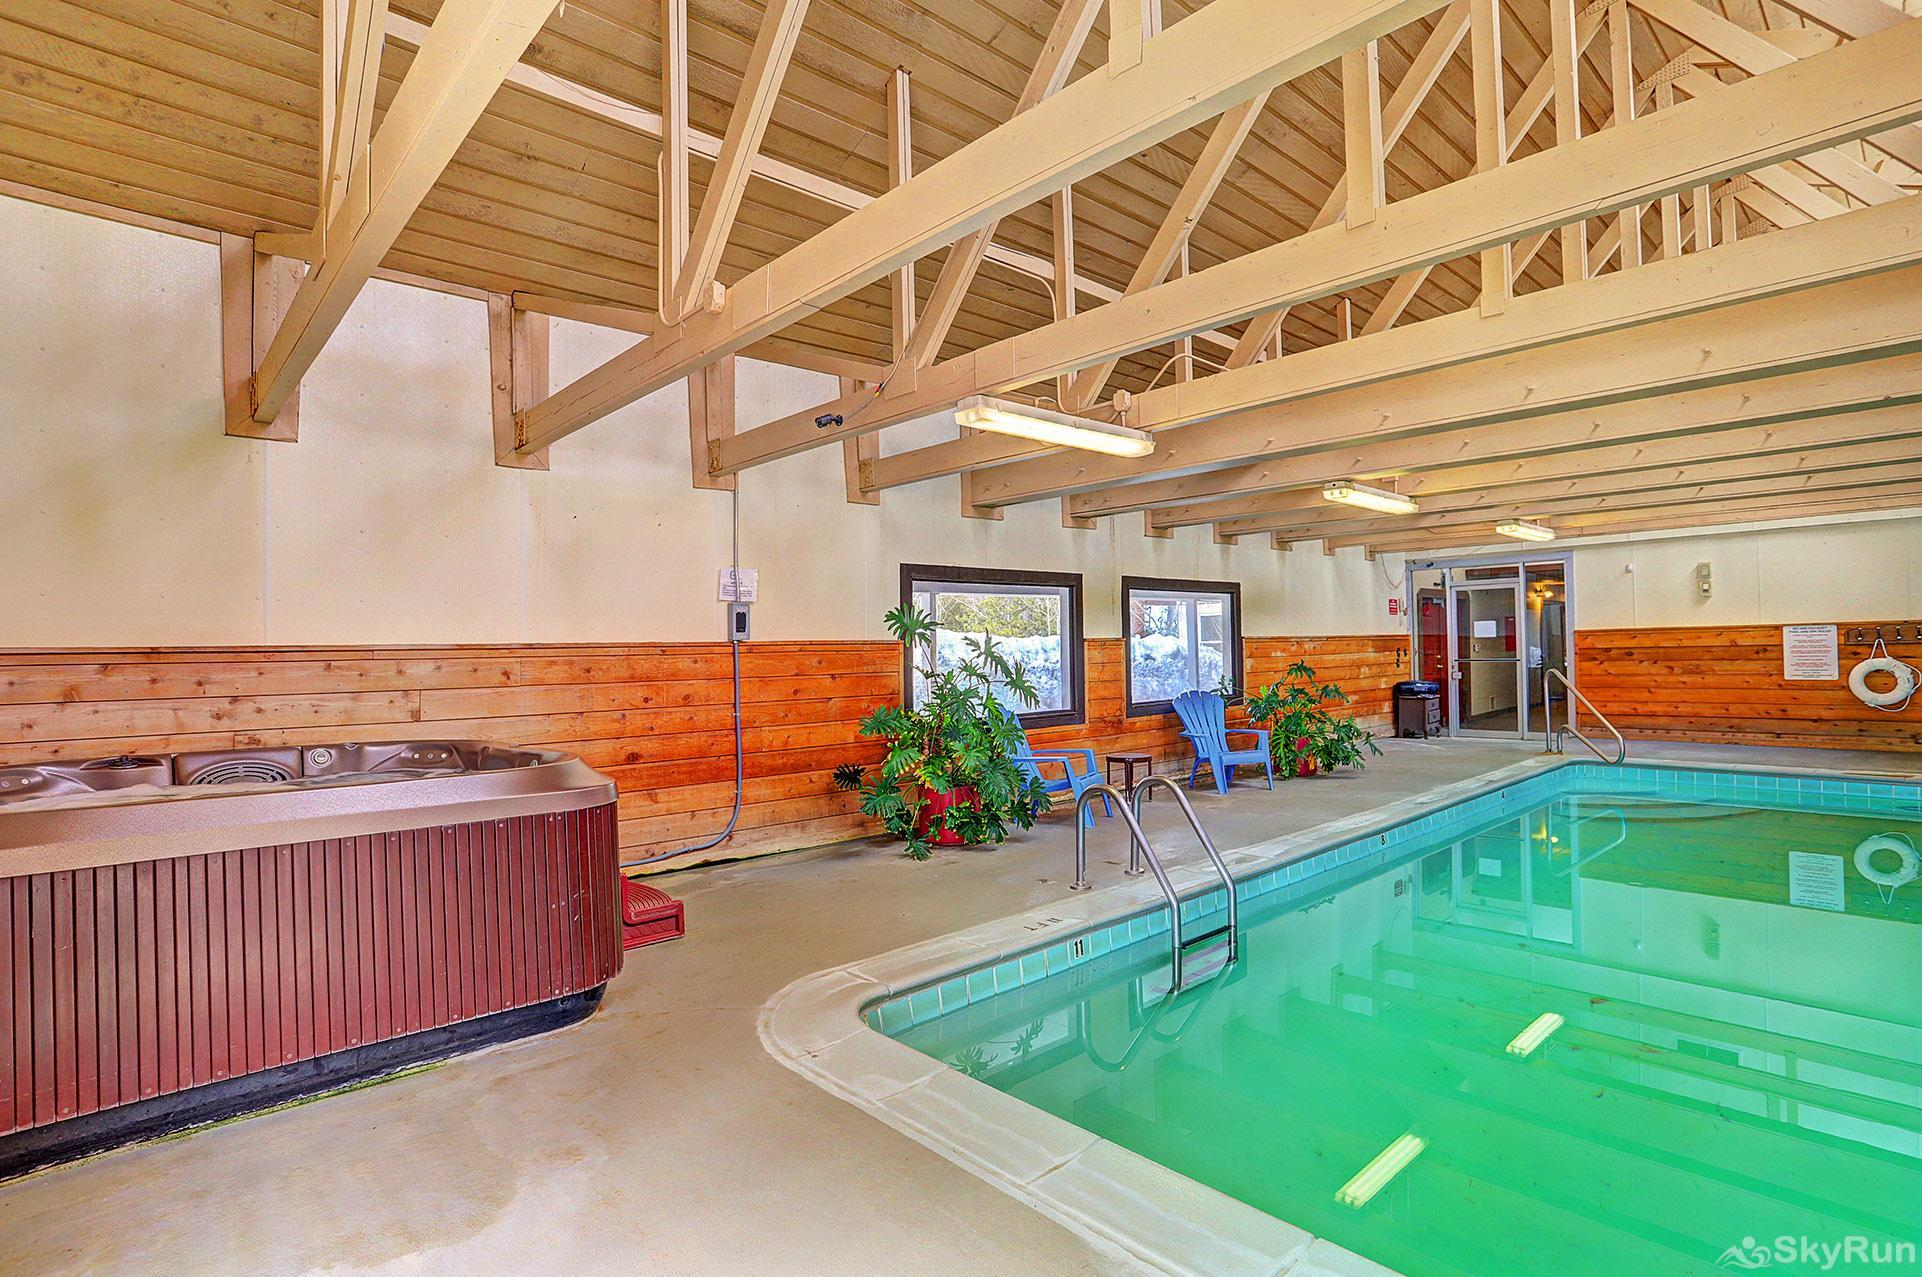 Ski and Racquet Club B106 Lovely hot tub and swimming pool available in the clubhouse